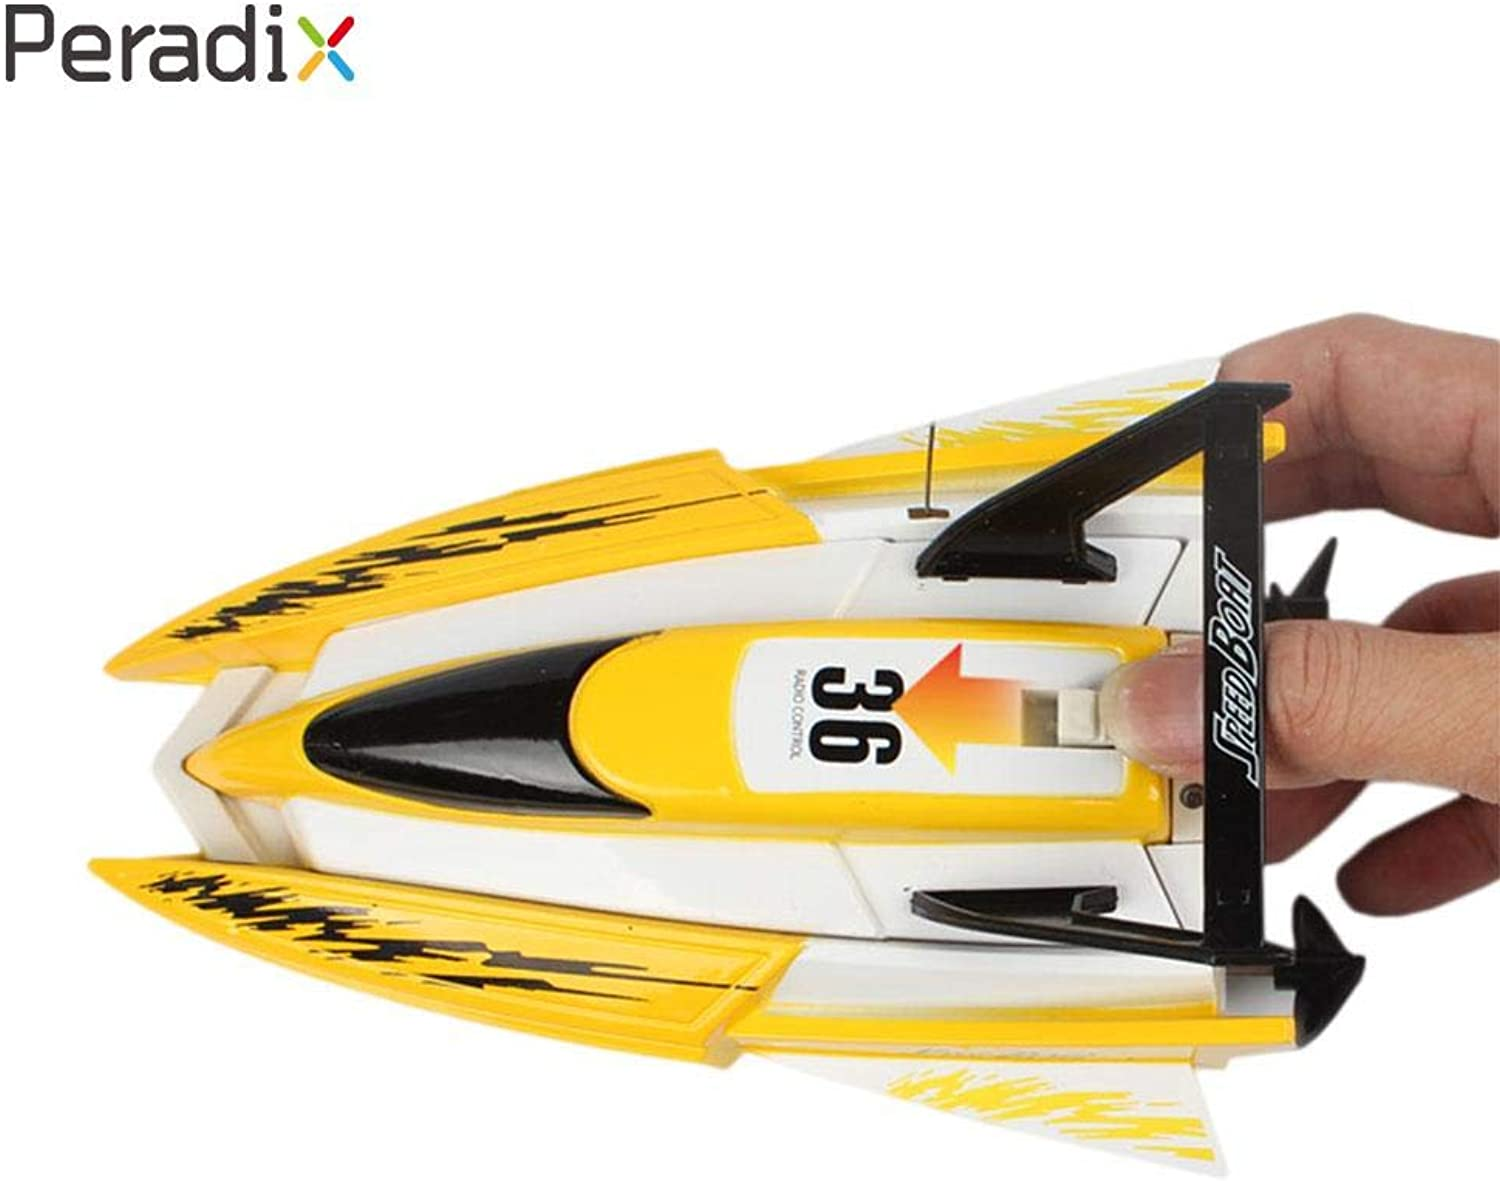 Generic Boat Toys Racing Boat Rc Boat Boys RC Toys Yellow Xmas Gifts Funny 4CH Plastic Eletronic Mini Water Ship